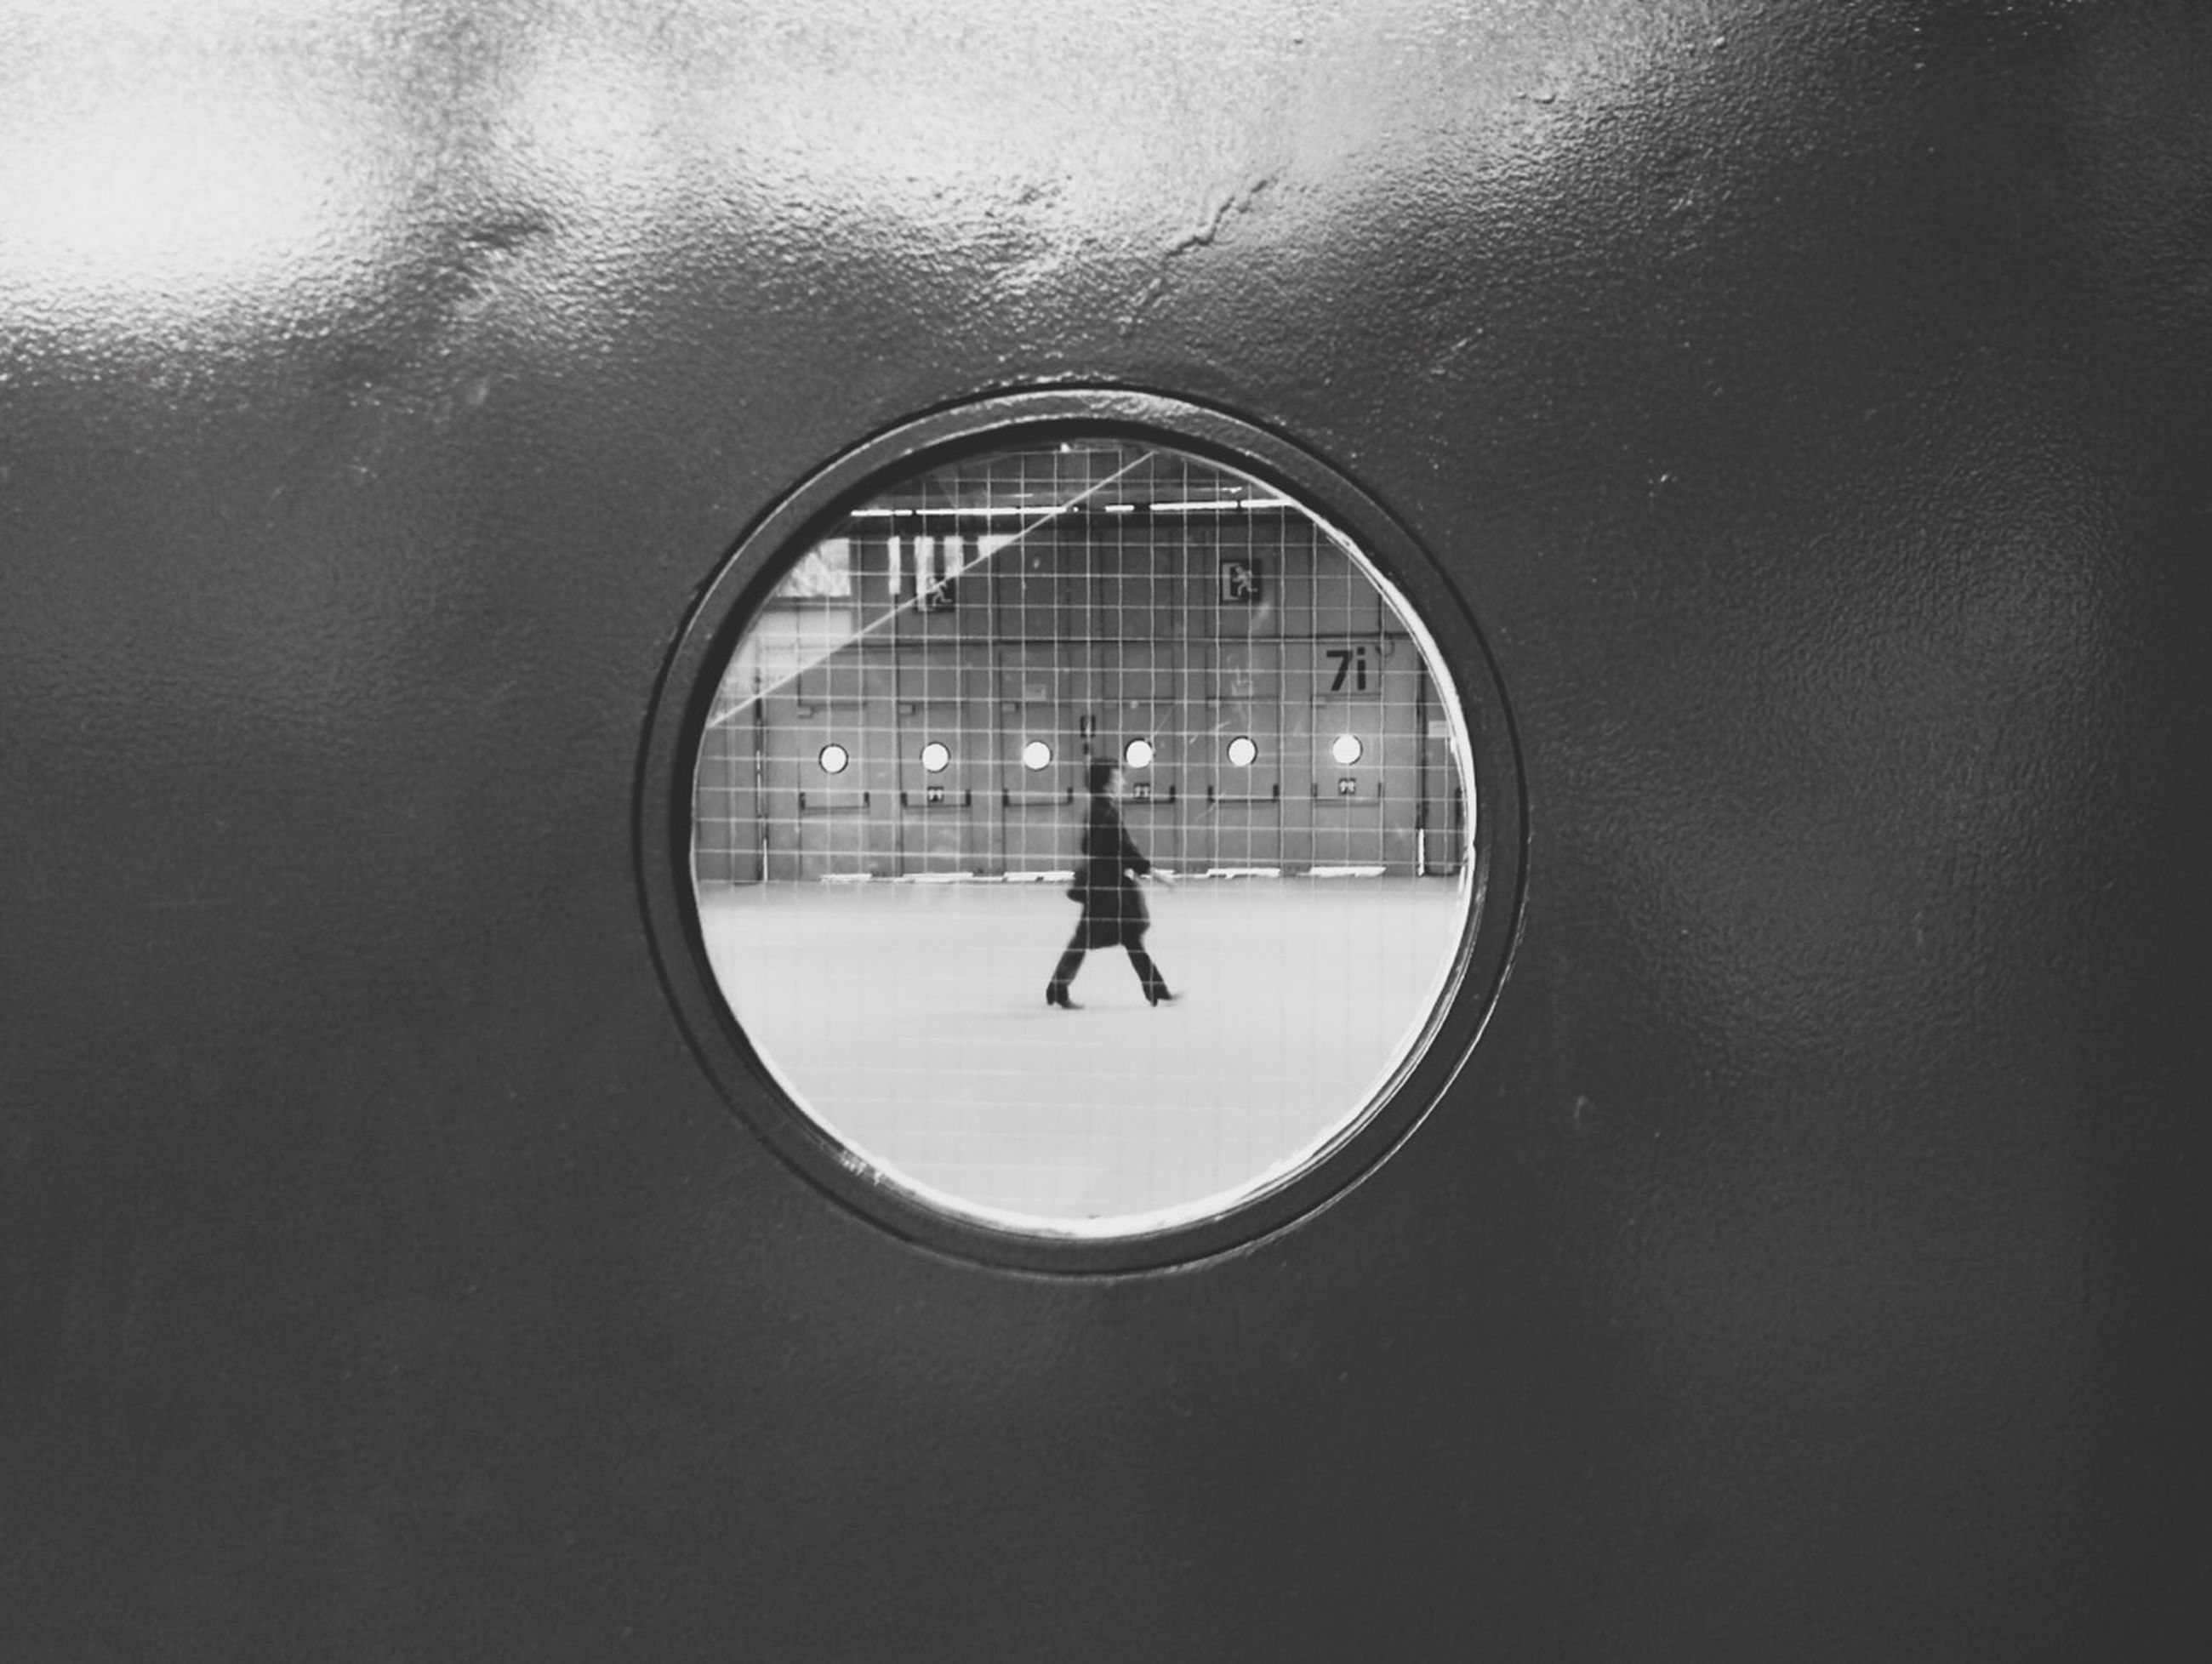 indoors, lifestyles, silhouette, full length, walking, men, leisure activity, reflection, arch, window, architecture, rear view, built structure, standing, glass - material, tunnel, day, boys